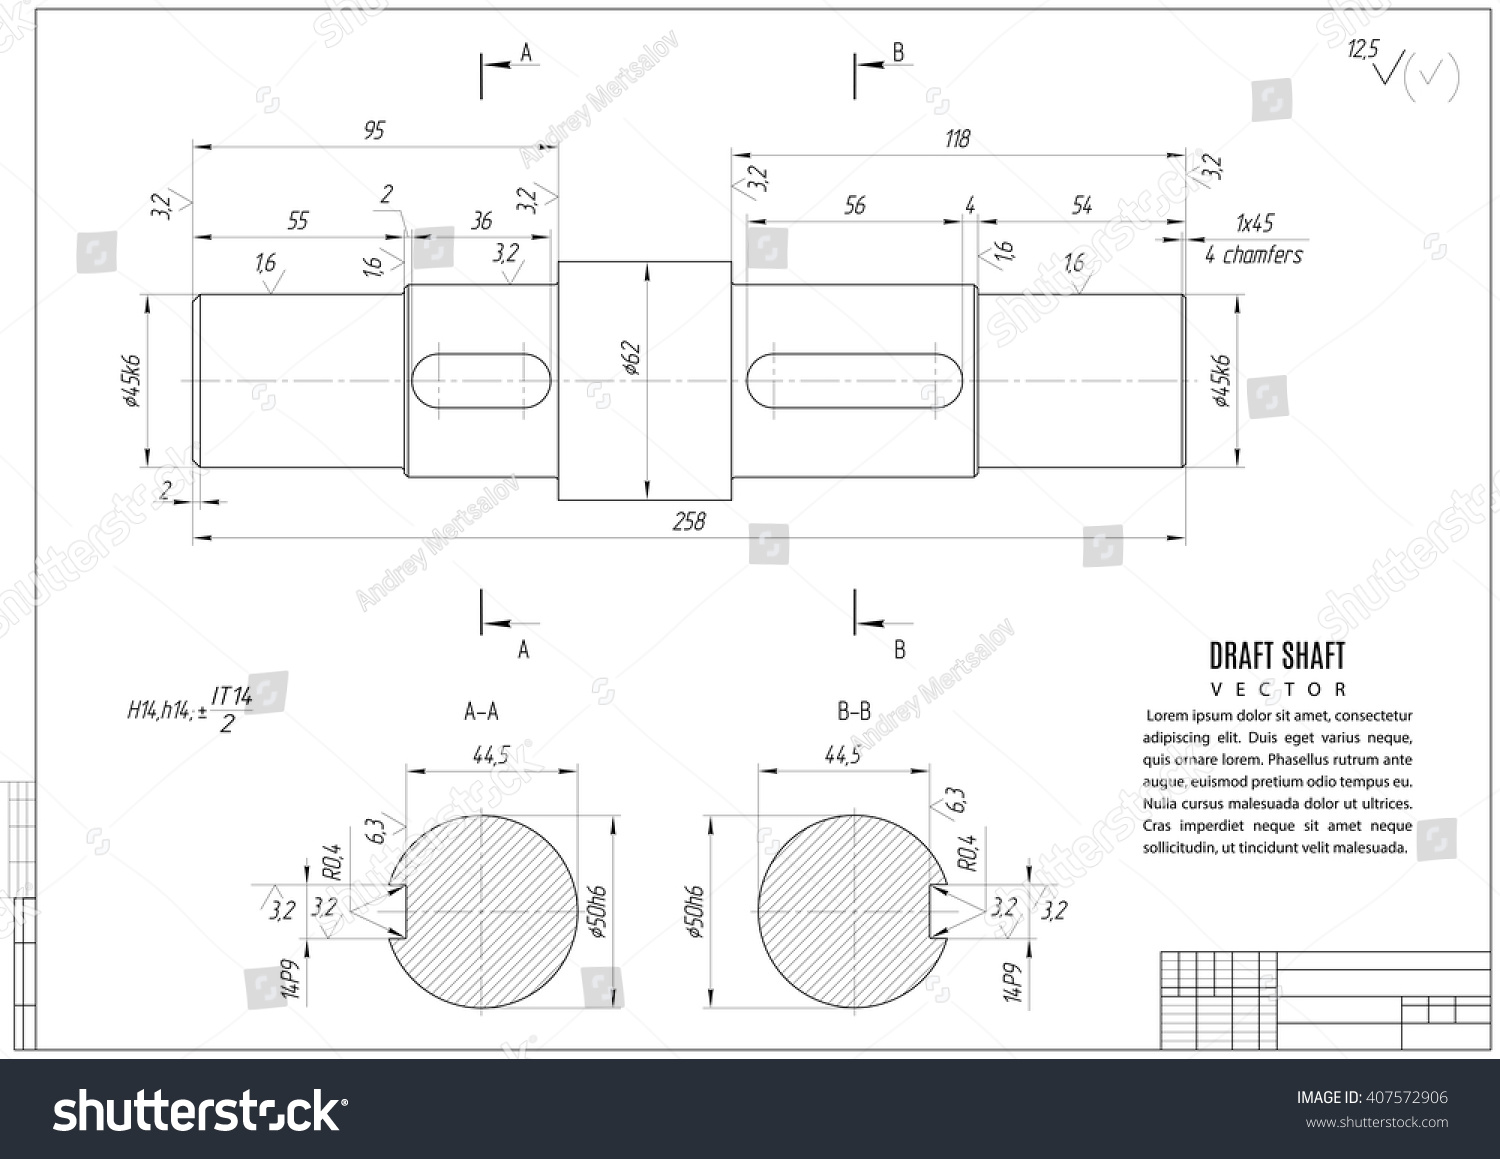 technical drawing shaft construction draft horizontal stock vector